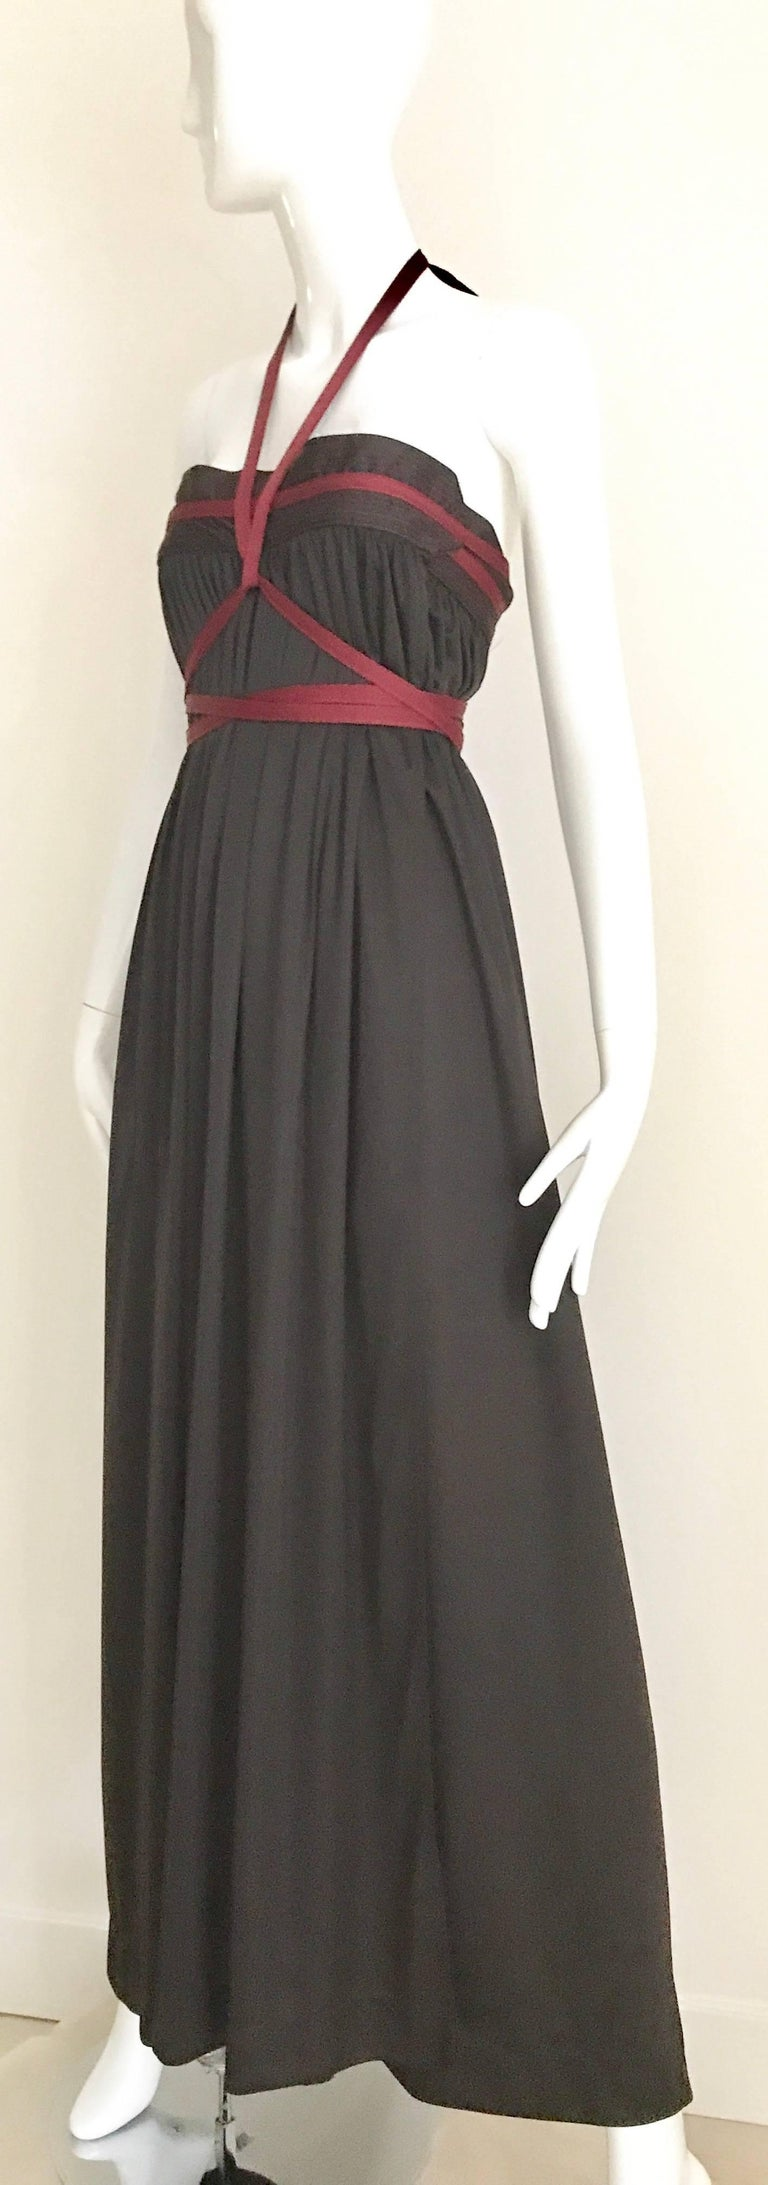 1970s Geoffrey Beene Brown and Red Knit Maxi Dress For Sale 3